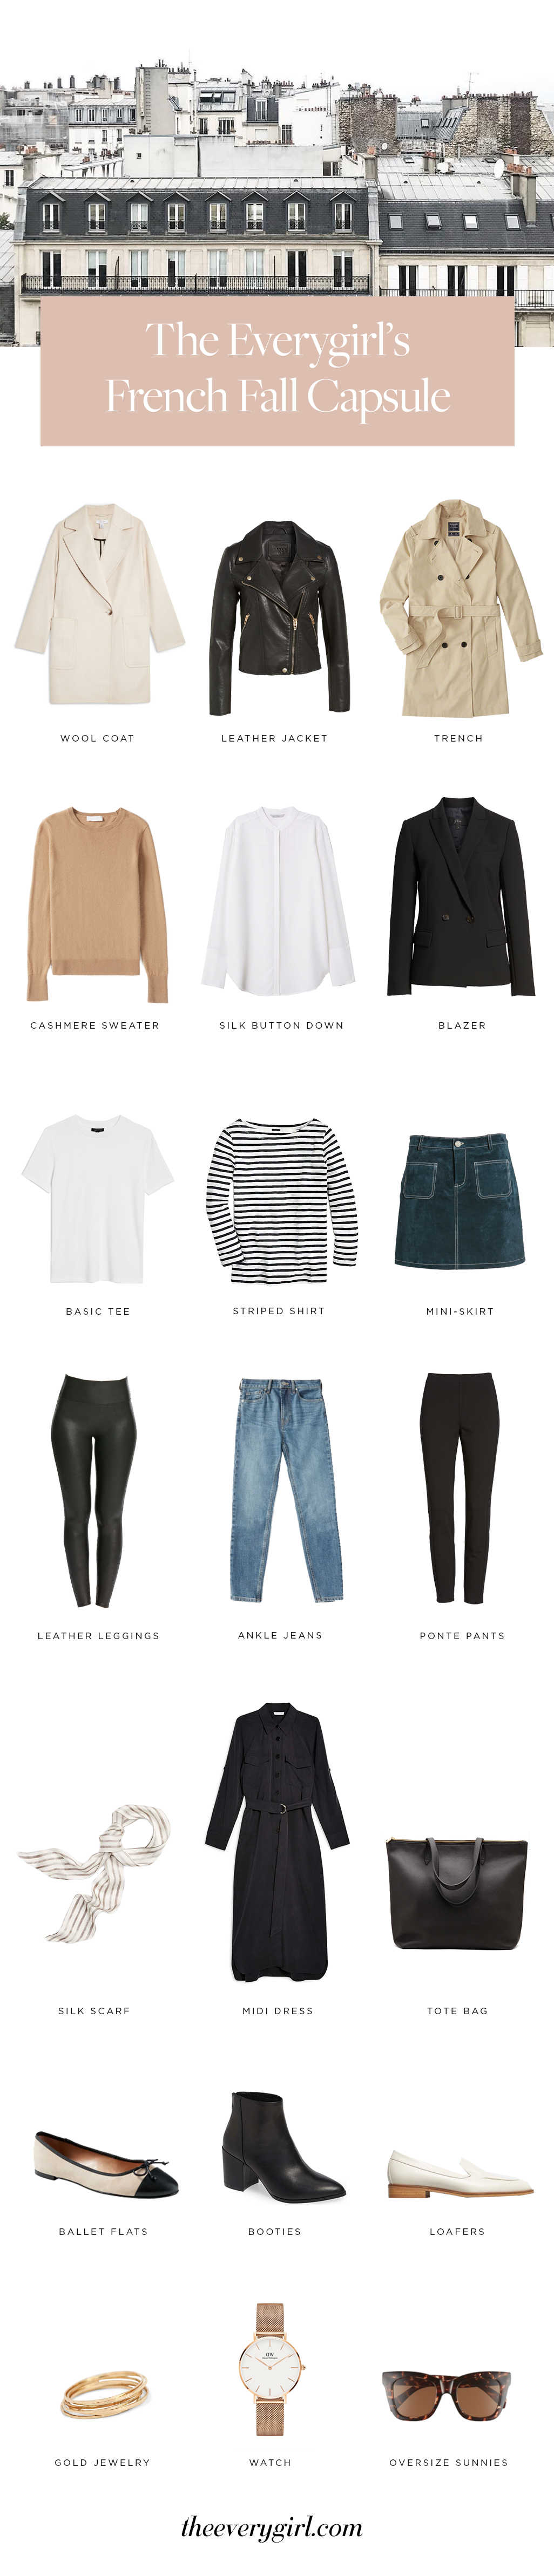 How to Create a French Fall Capsule Wardrobe | The Everygirl